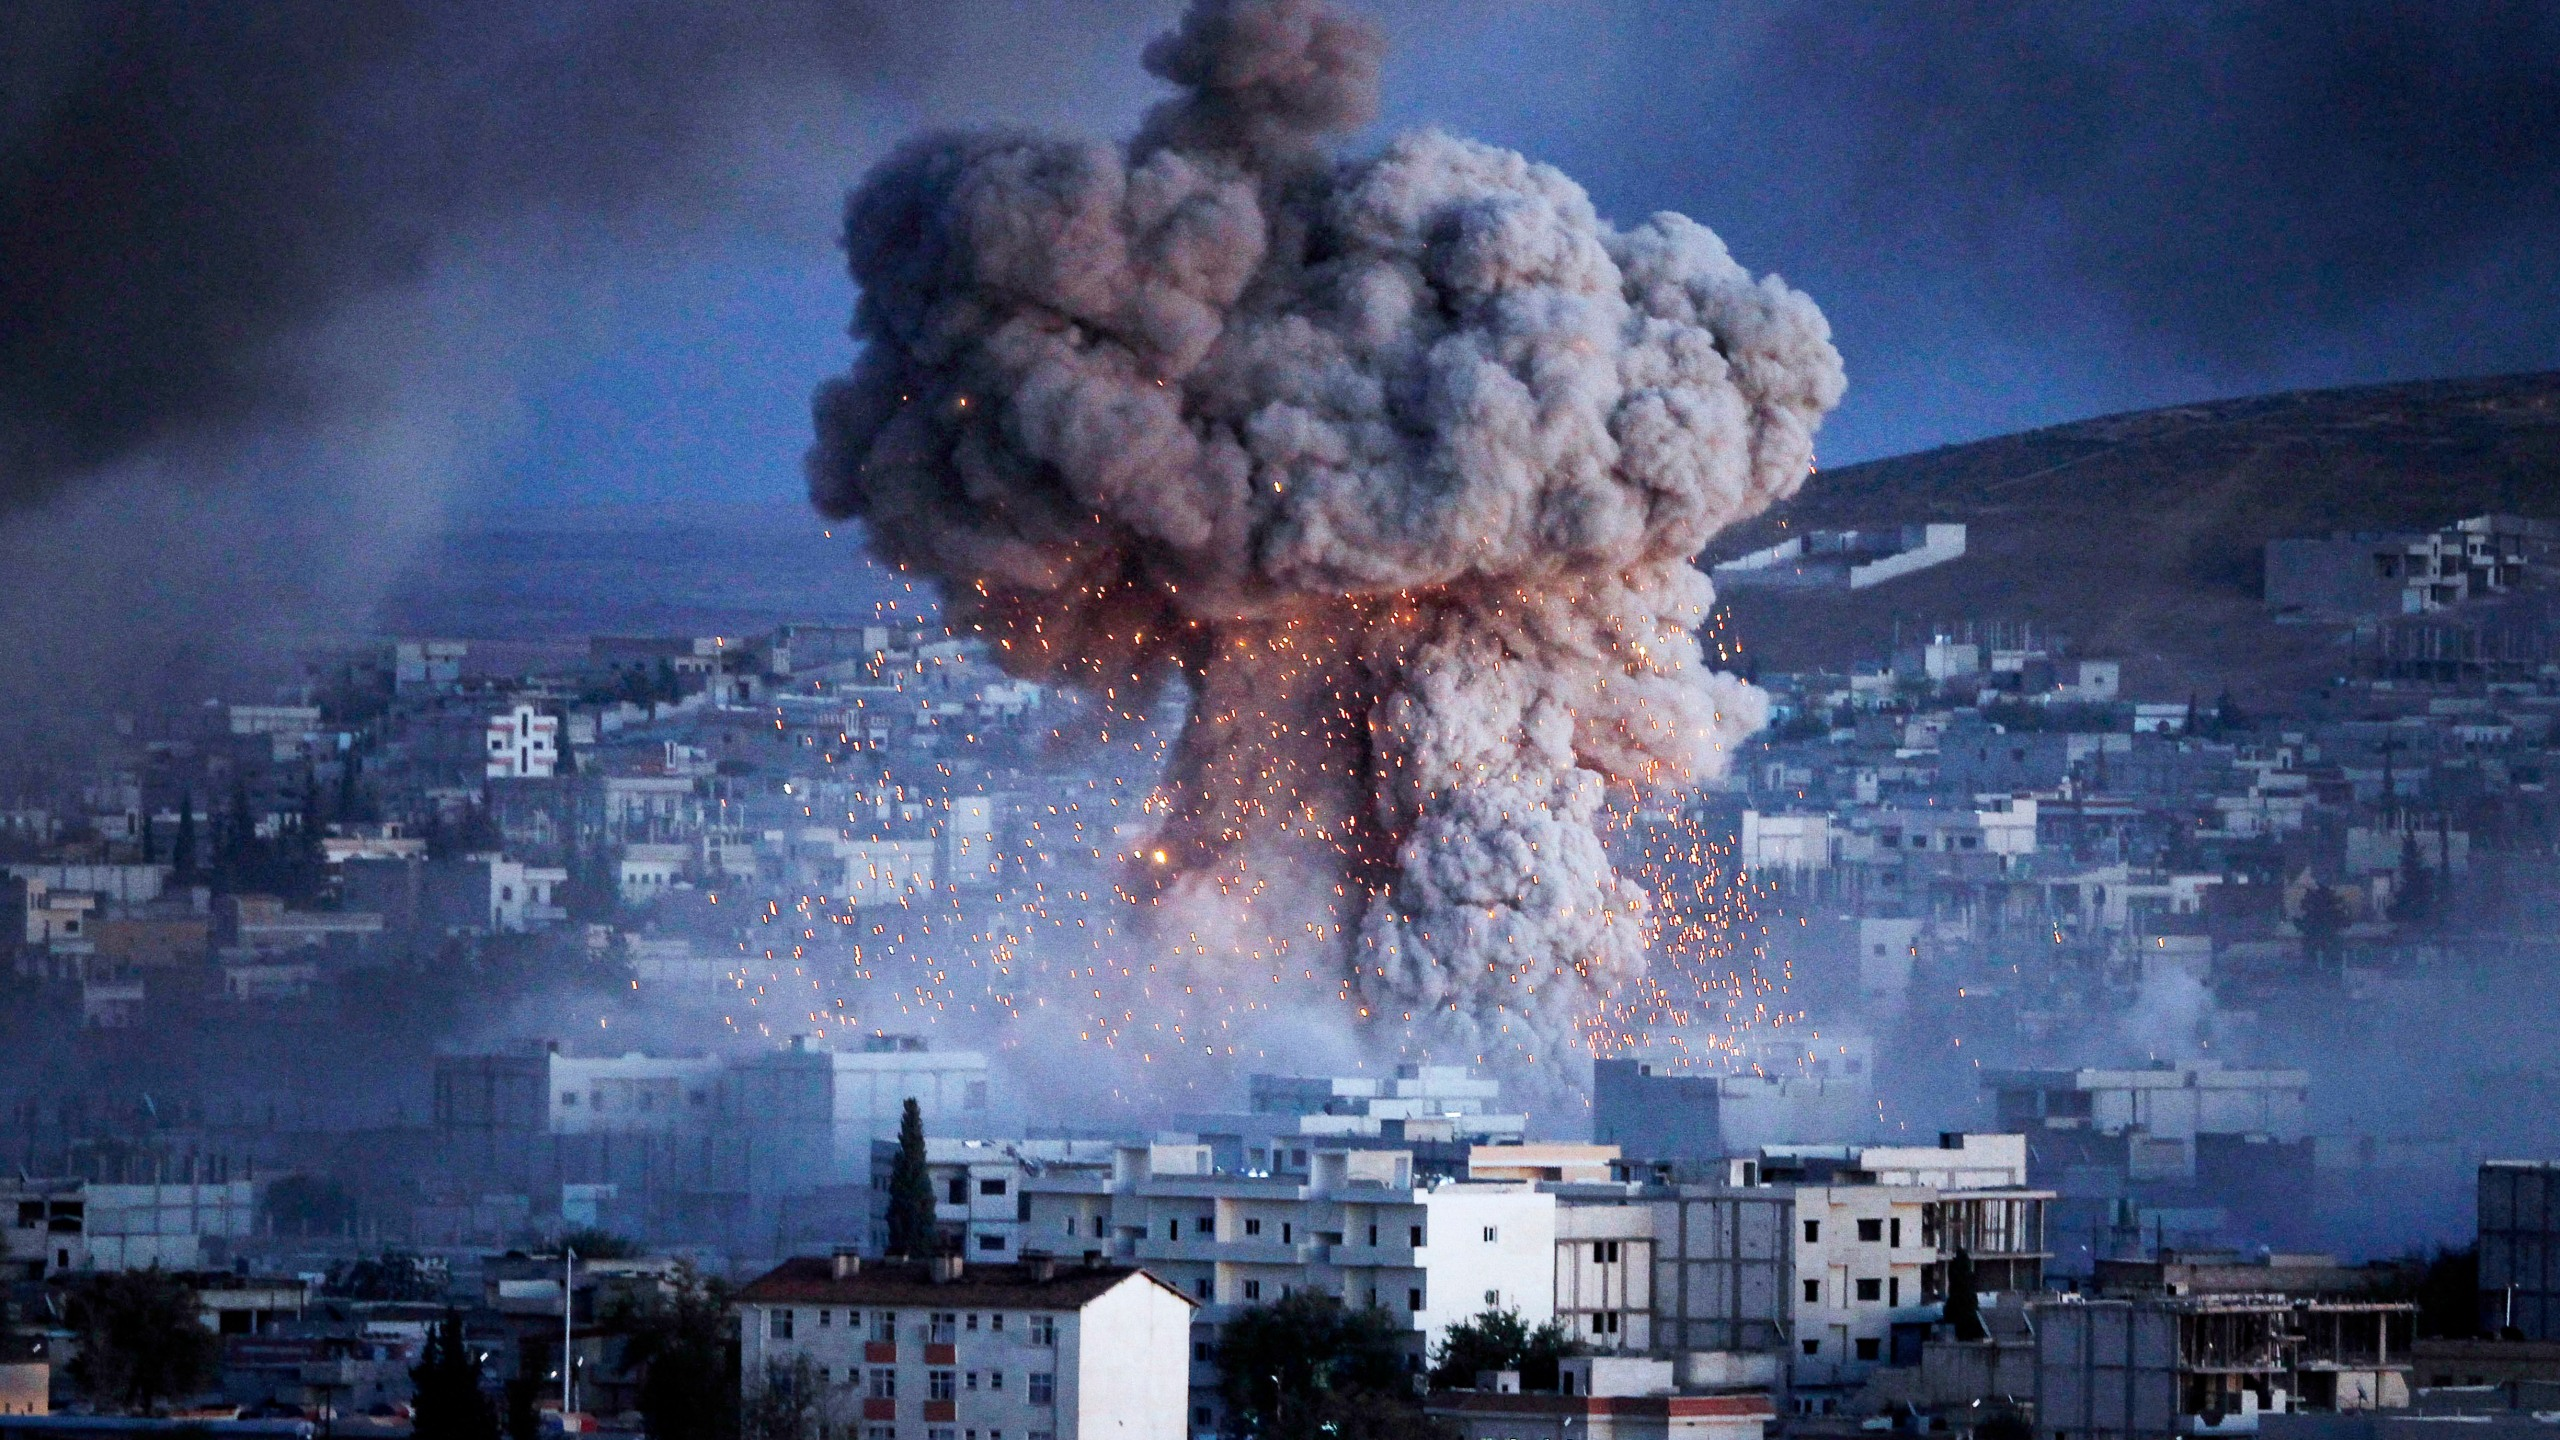 An explosion rocks Syrian city of Kobani during a reported suicide car bomb attack by the militants of Islamic State (ISIS) group on a People's Protection Unit (YPG) position in the city center of Kobani, as seen from the outskirts of Suruc, on the Turkey-Syria border, October 20, 2014 in Sanliurfa province, Turkey. (Credit: Gokhan Sahin/Getty Images)